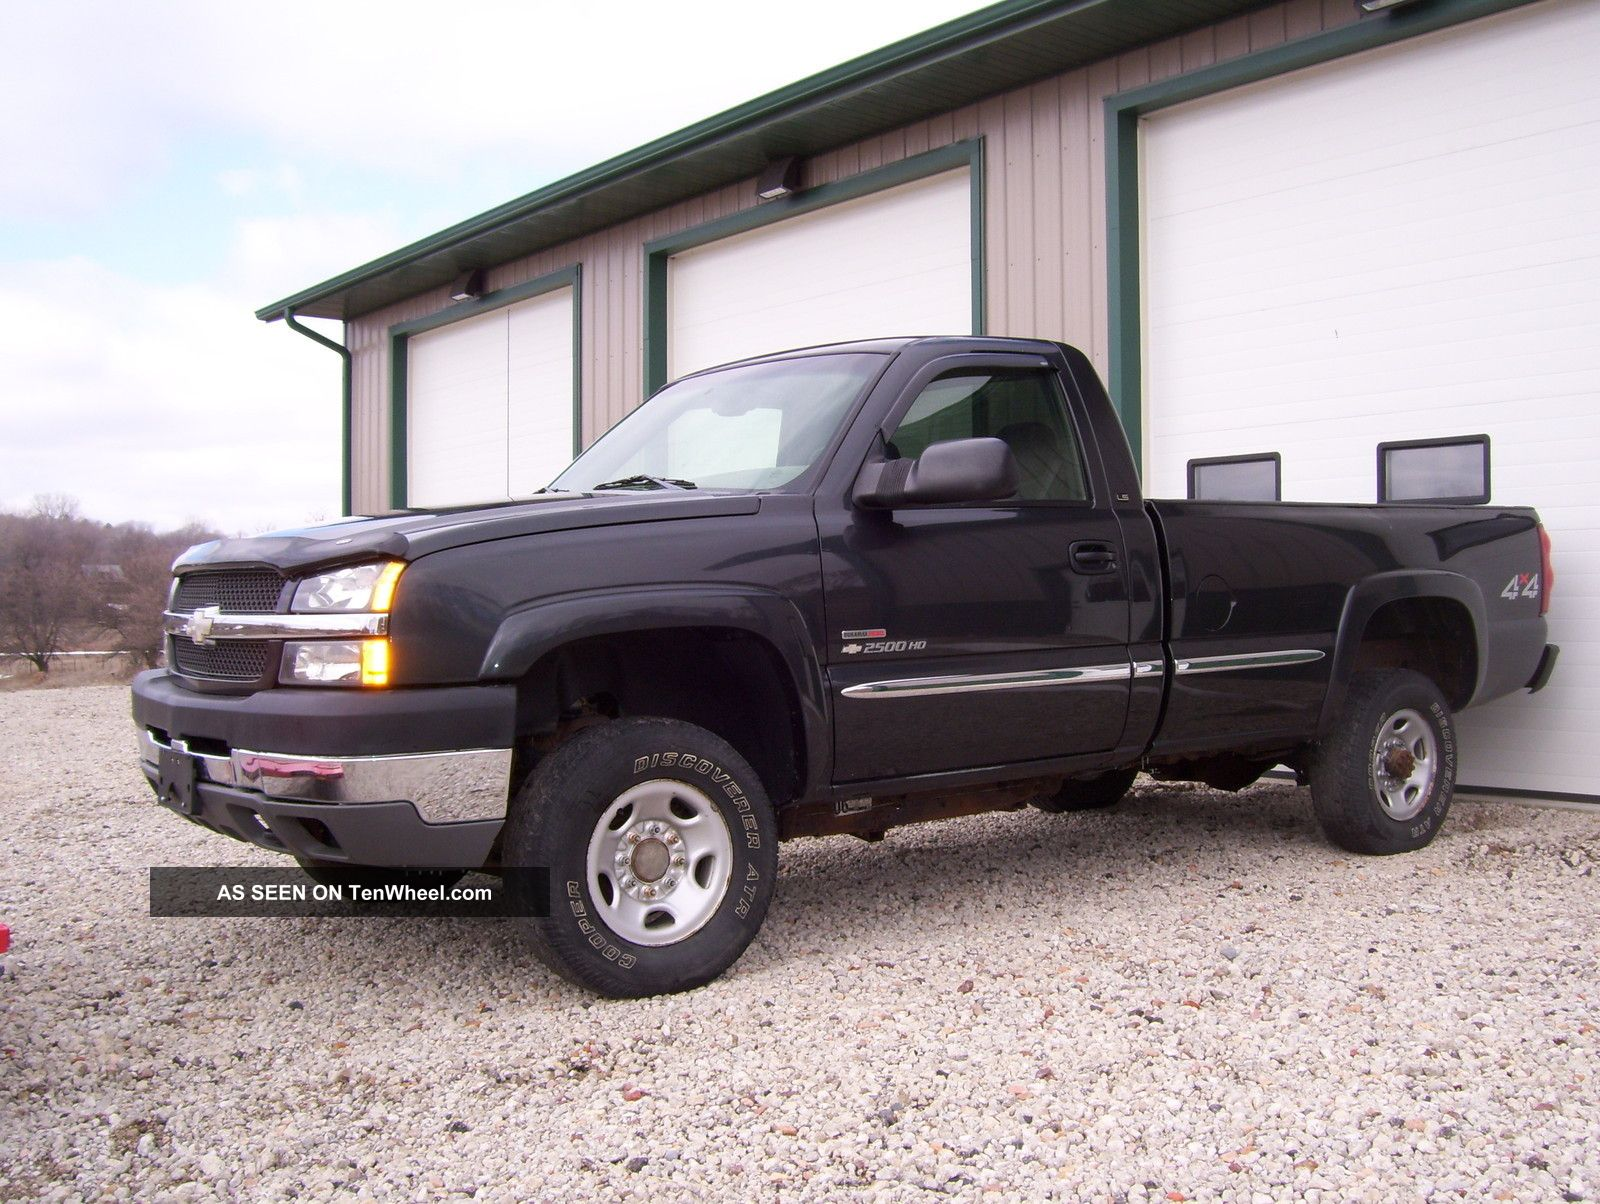 2003 2500Hd diesel duramax duty gmc heavy pickup truck #5